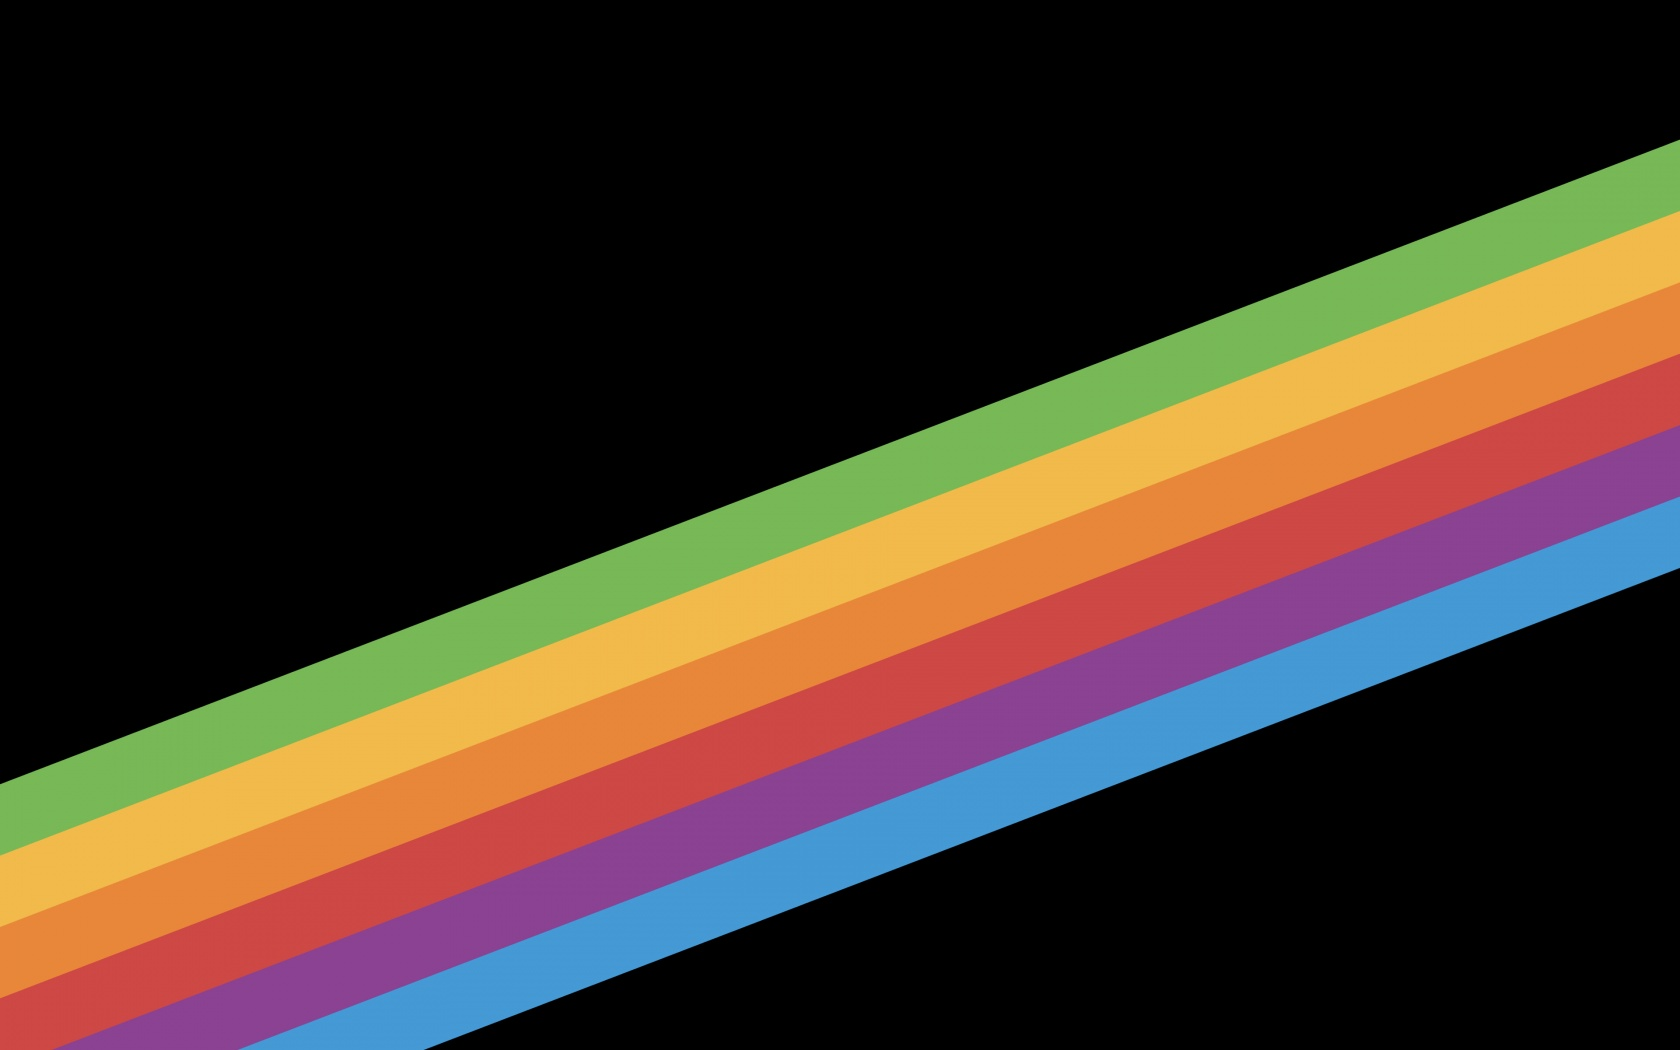 Stripes 4k Wallpaper Multicolor Ribbon Black Background Ios 11 Stock Abstract 770